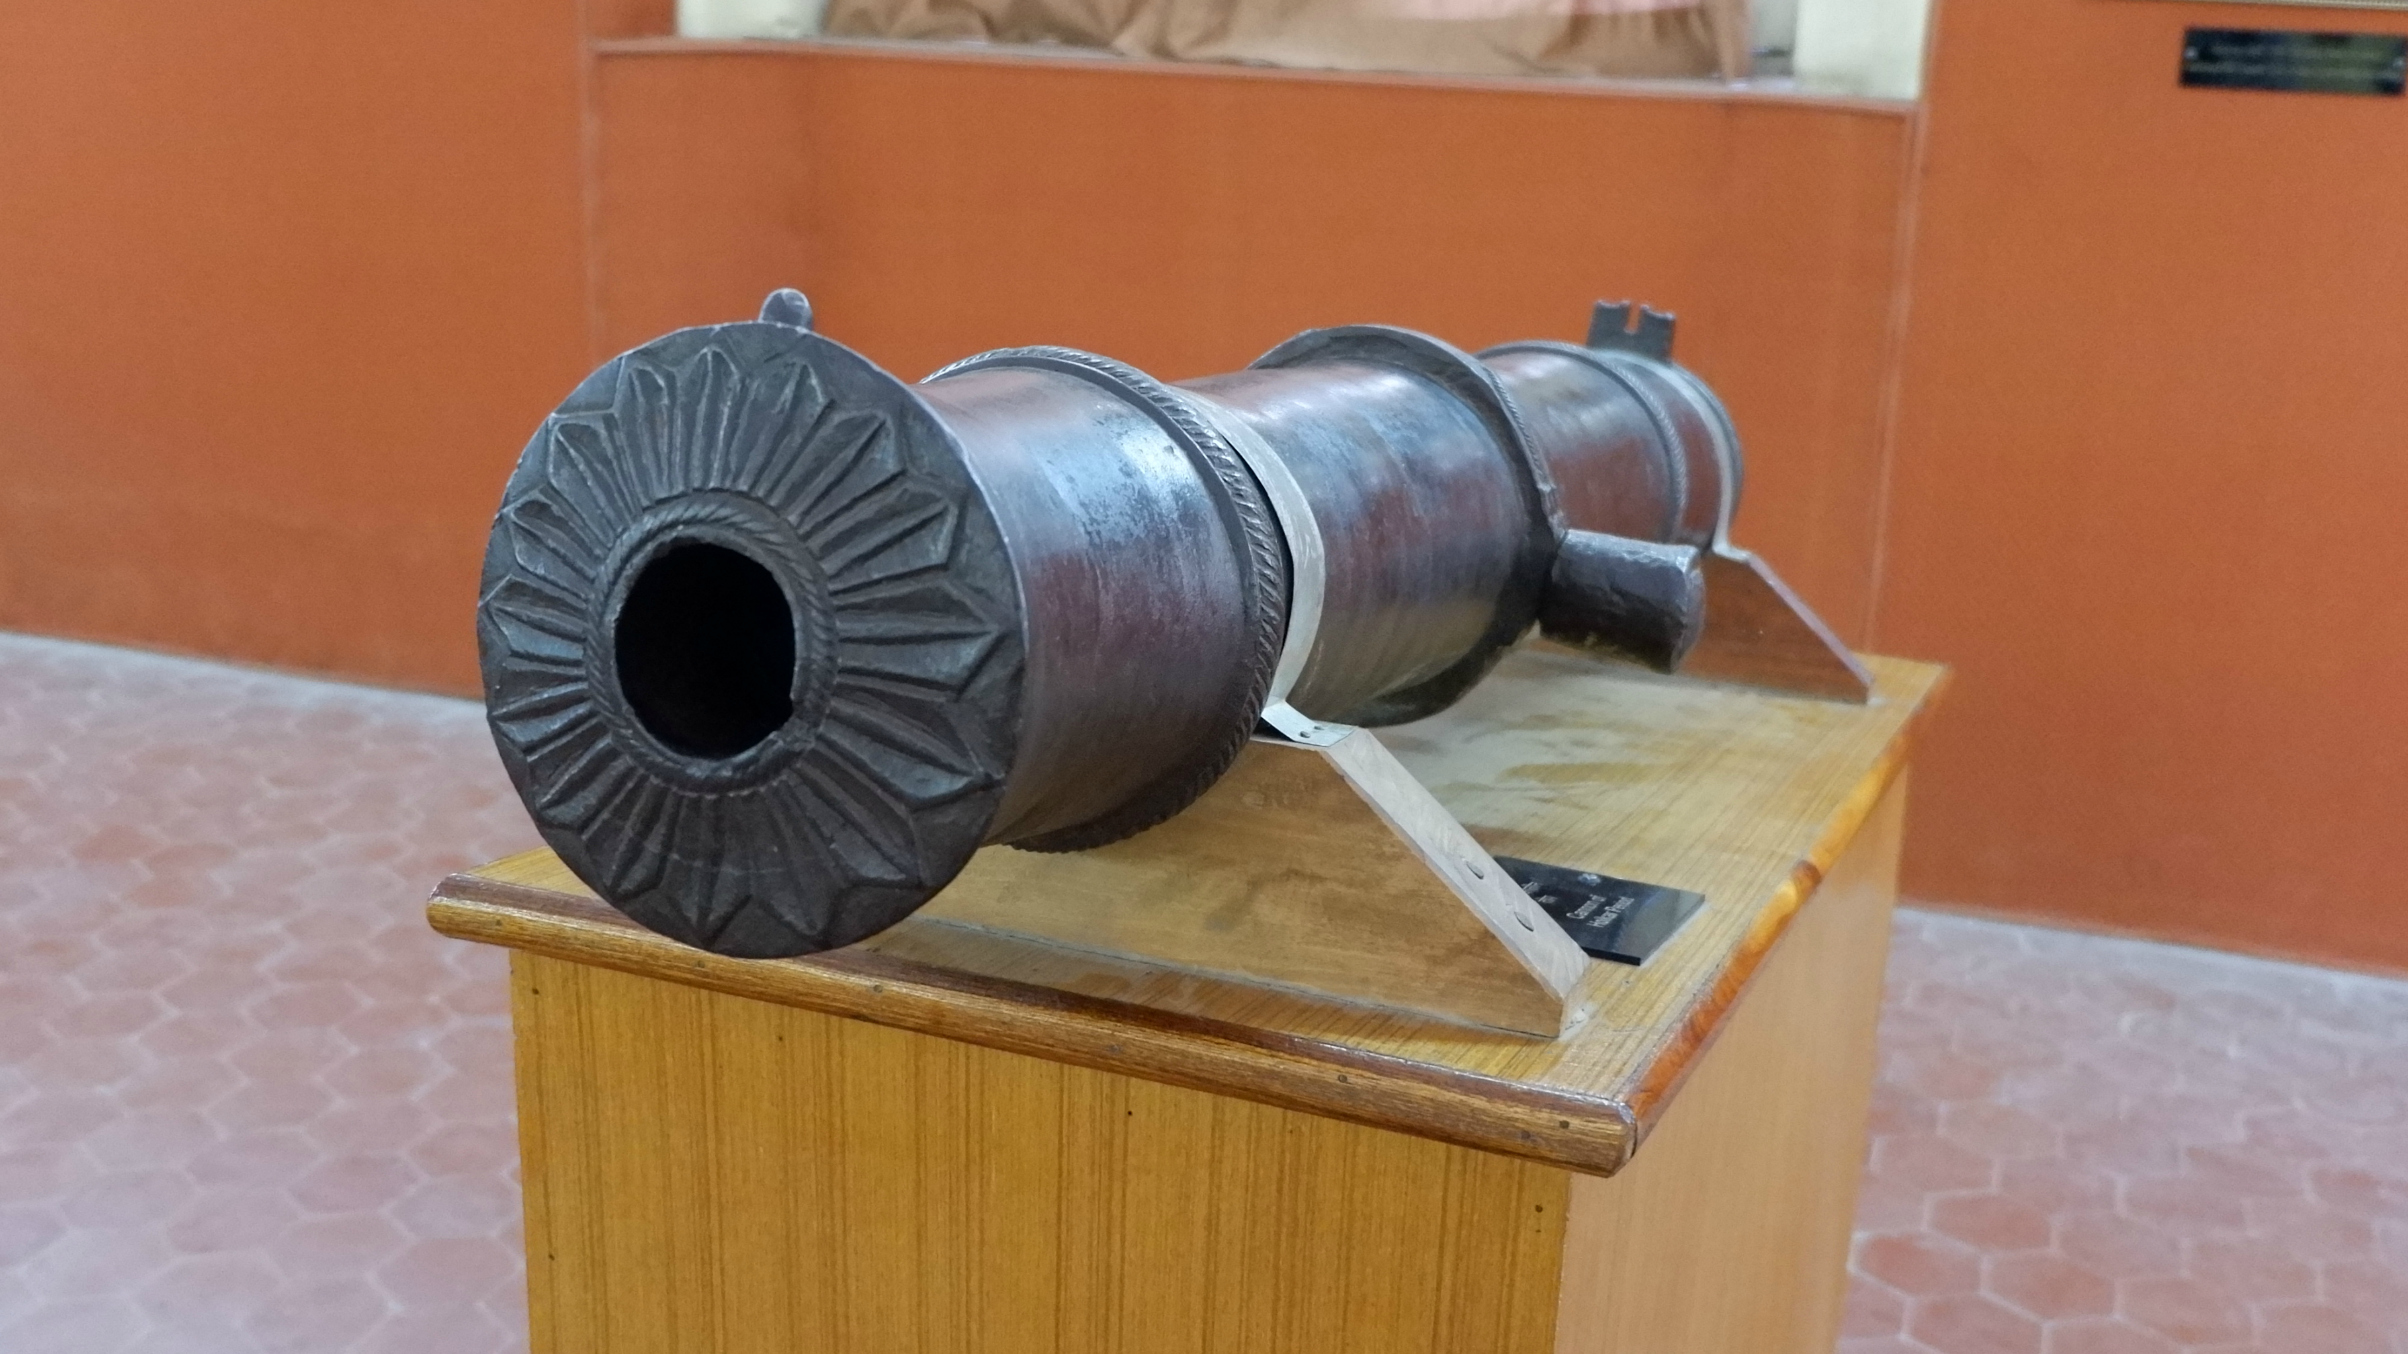 Indore_RajwadaPalace_Artifact.jpg